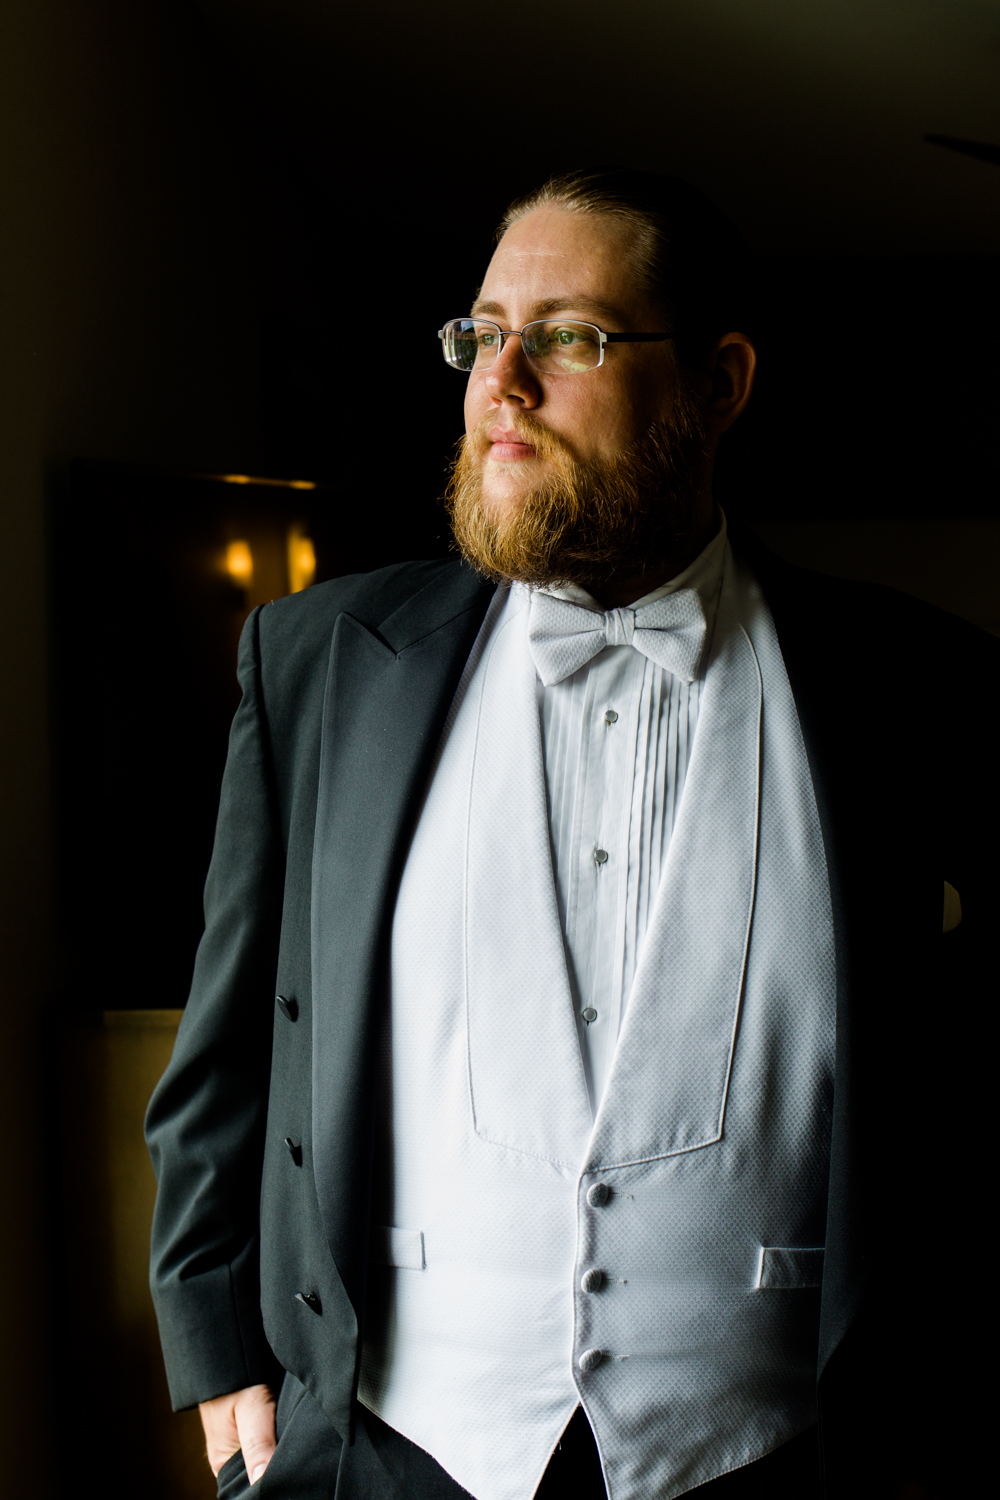 Portrait of a groom looking out a window. He has a black tux on with a white bowtie.